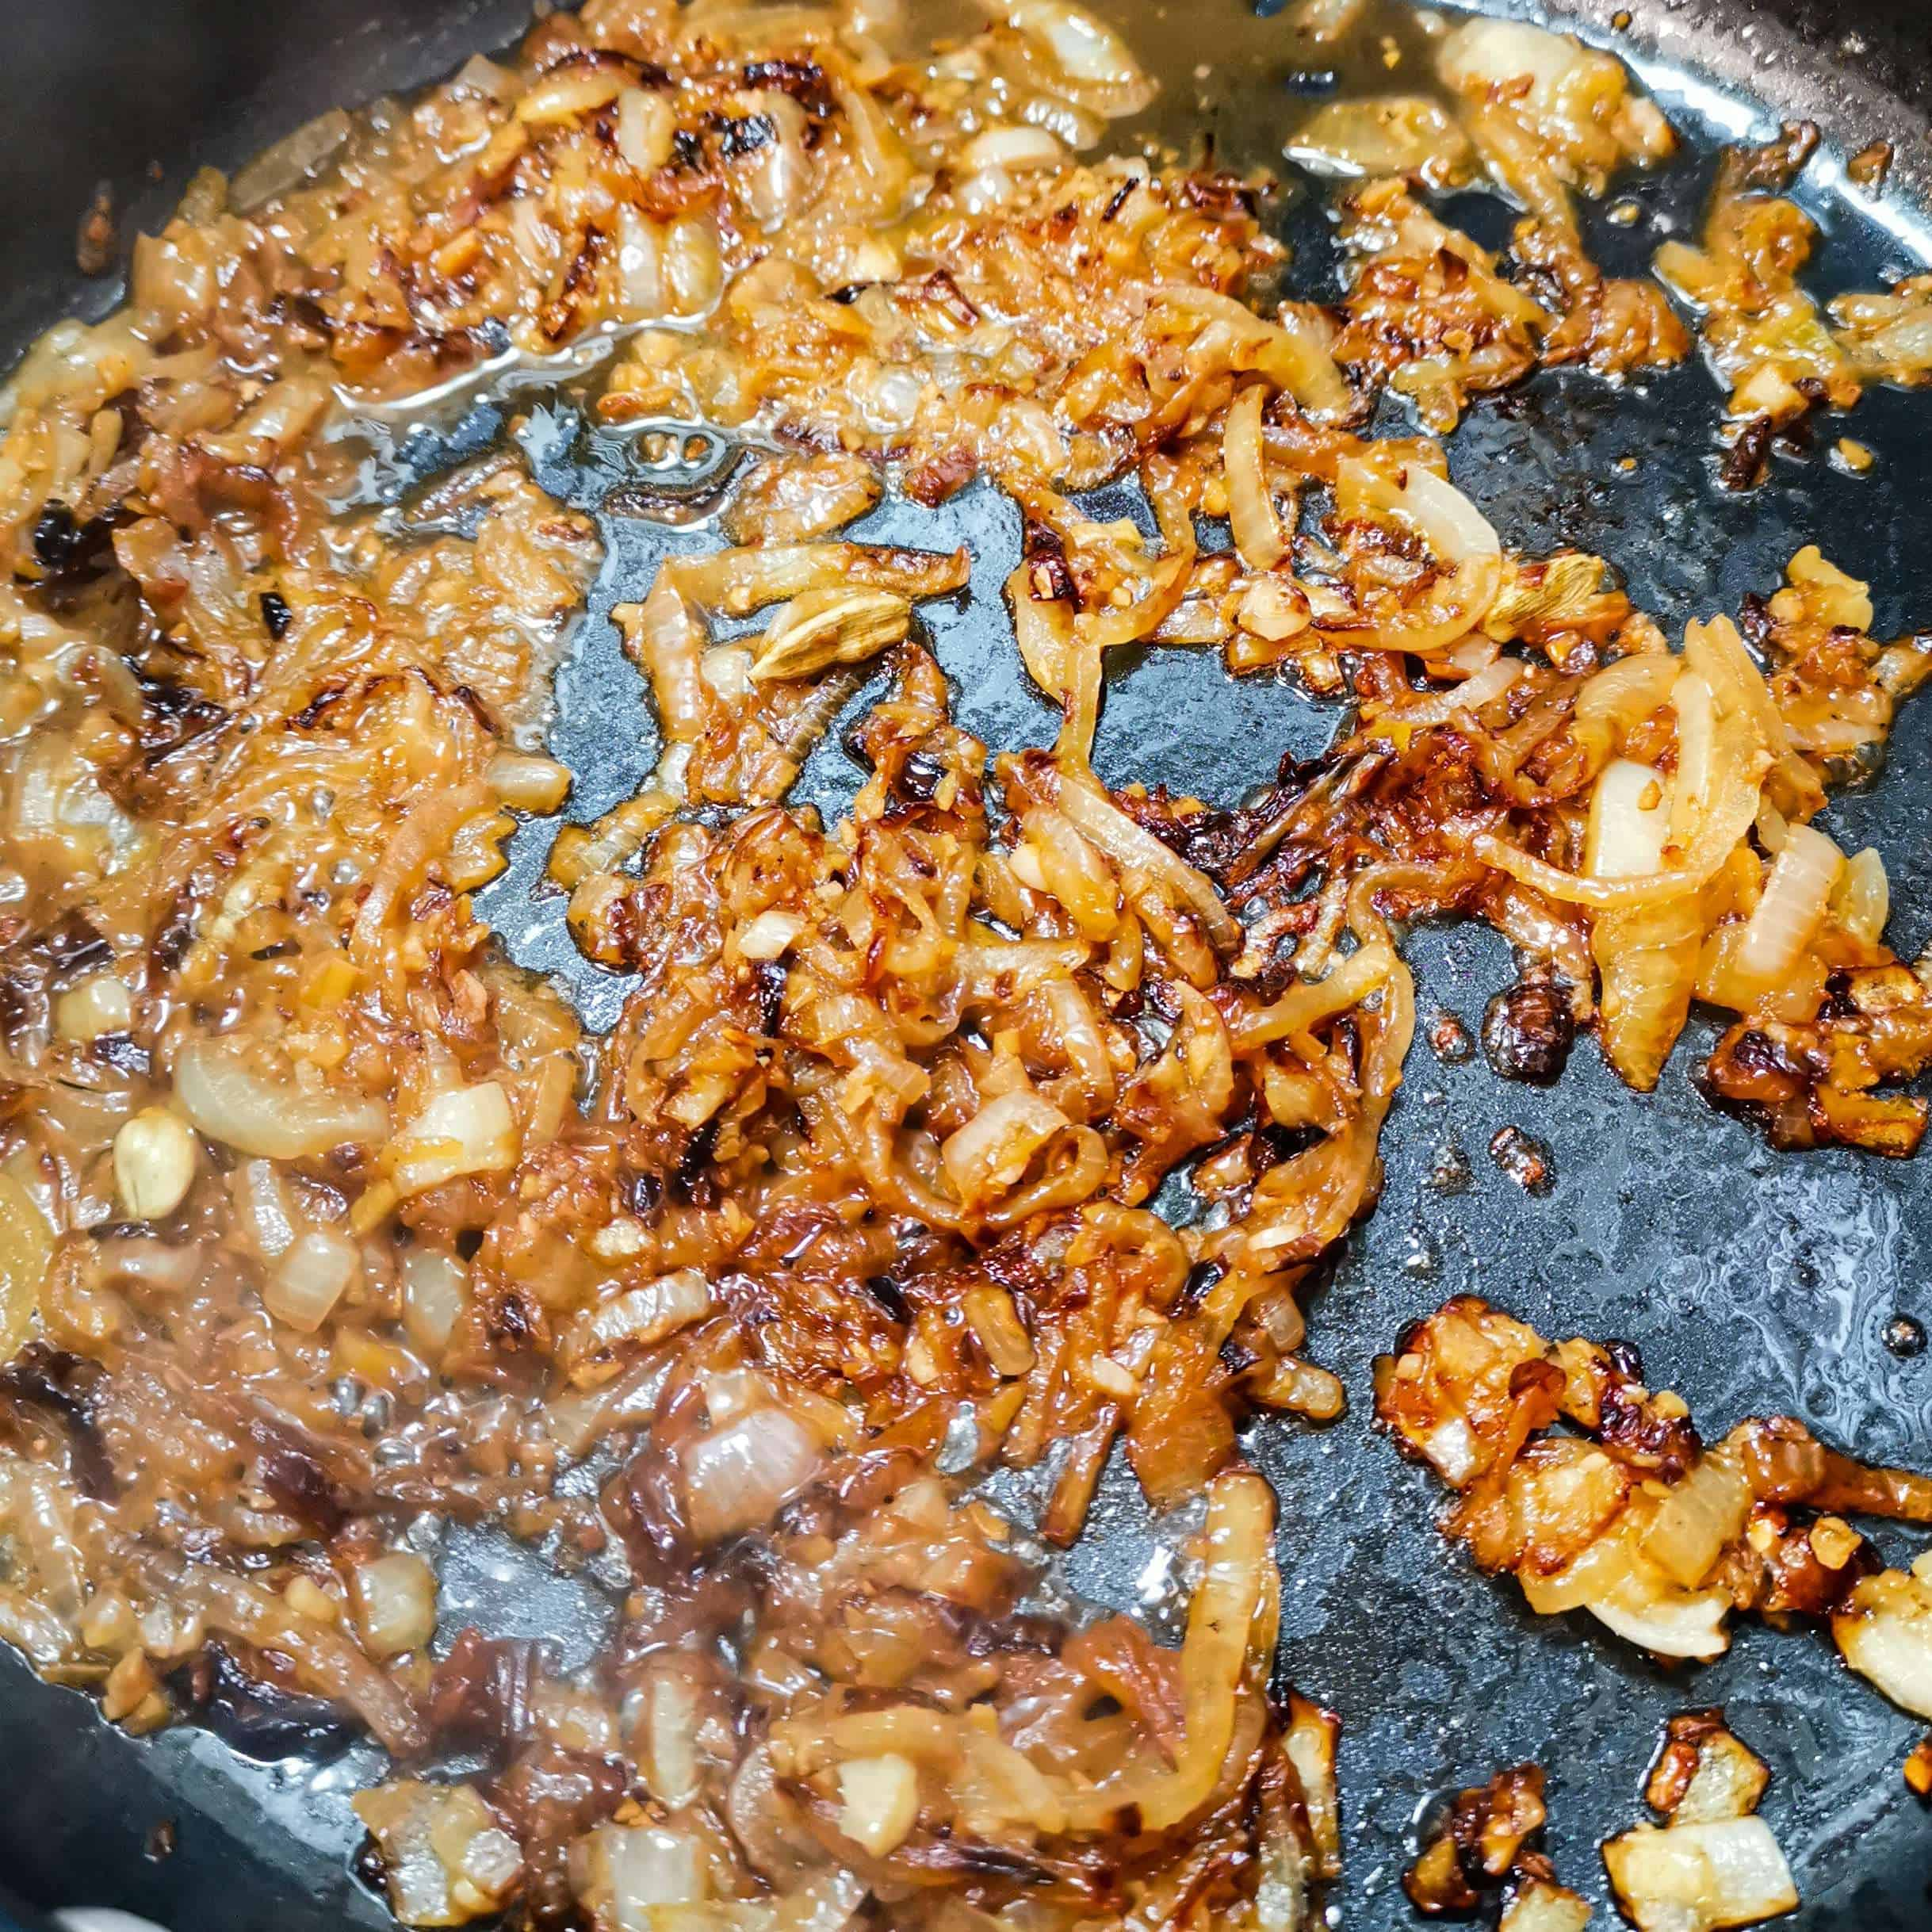 Onions in a pan water frying for a curry